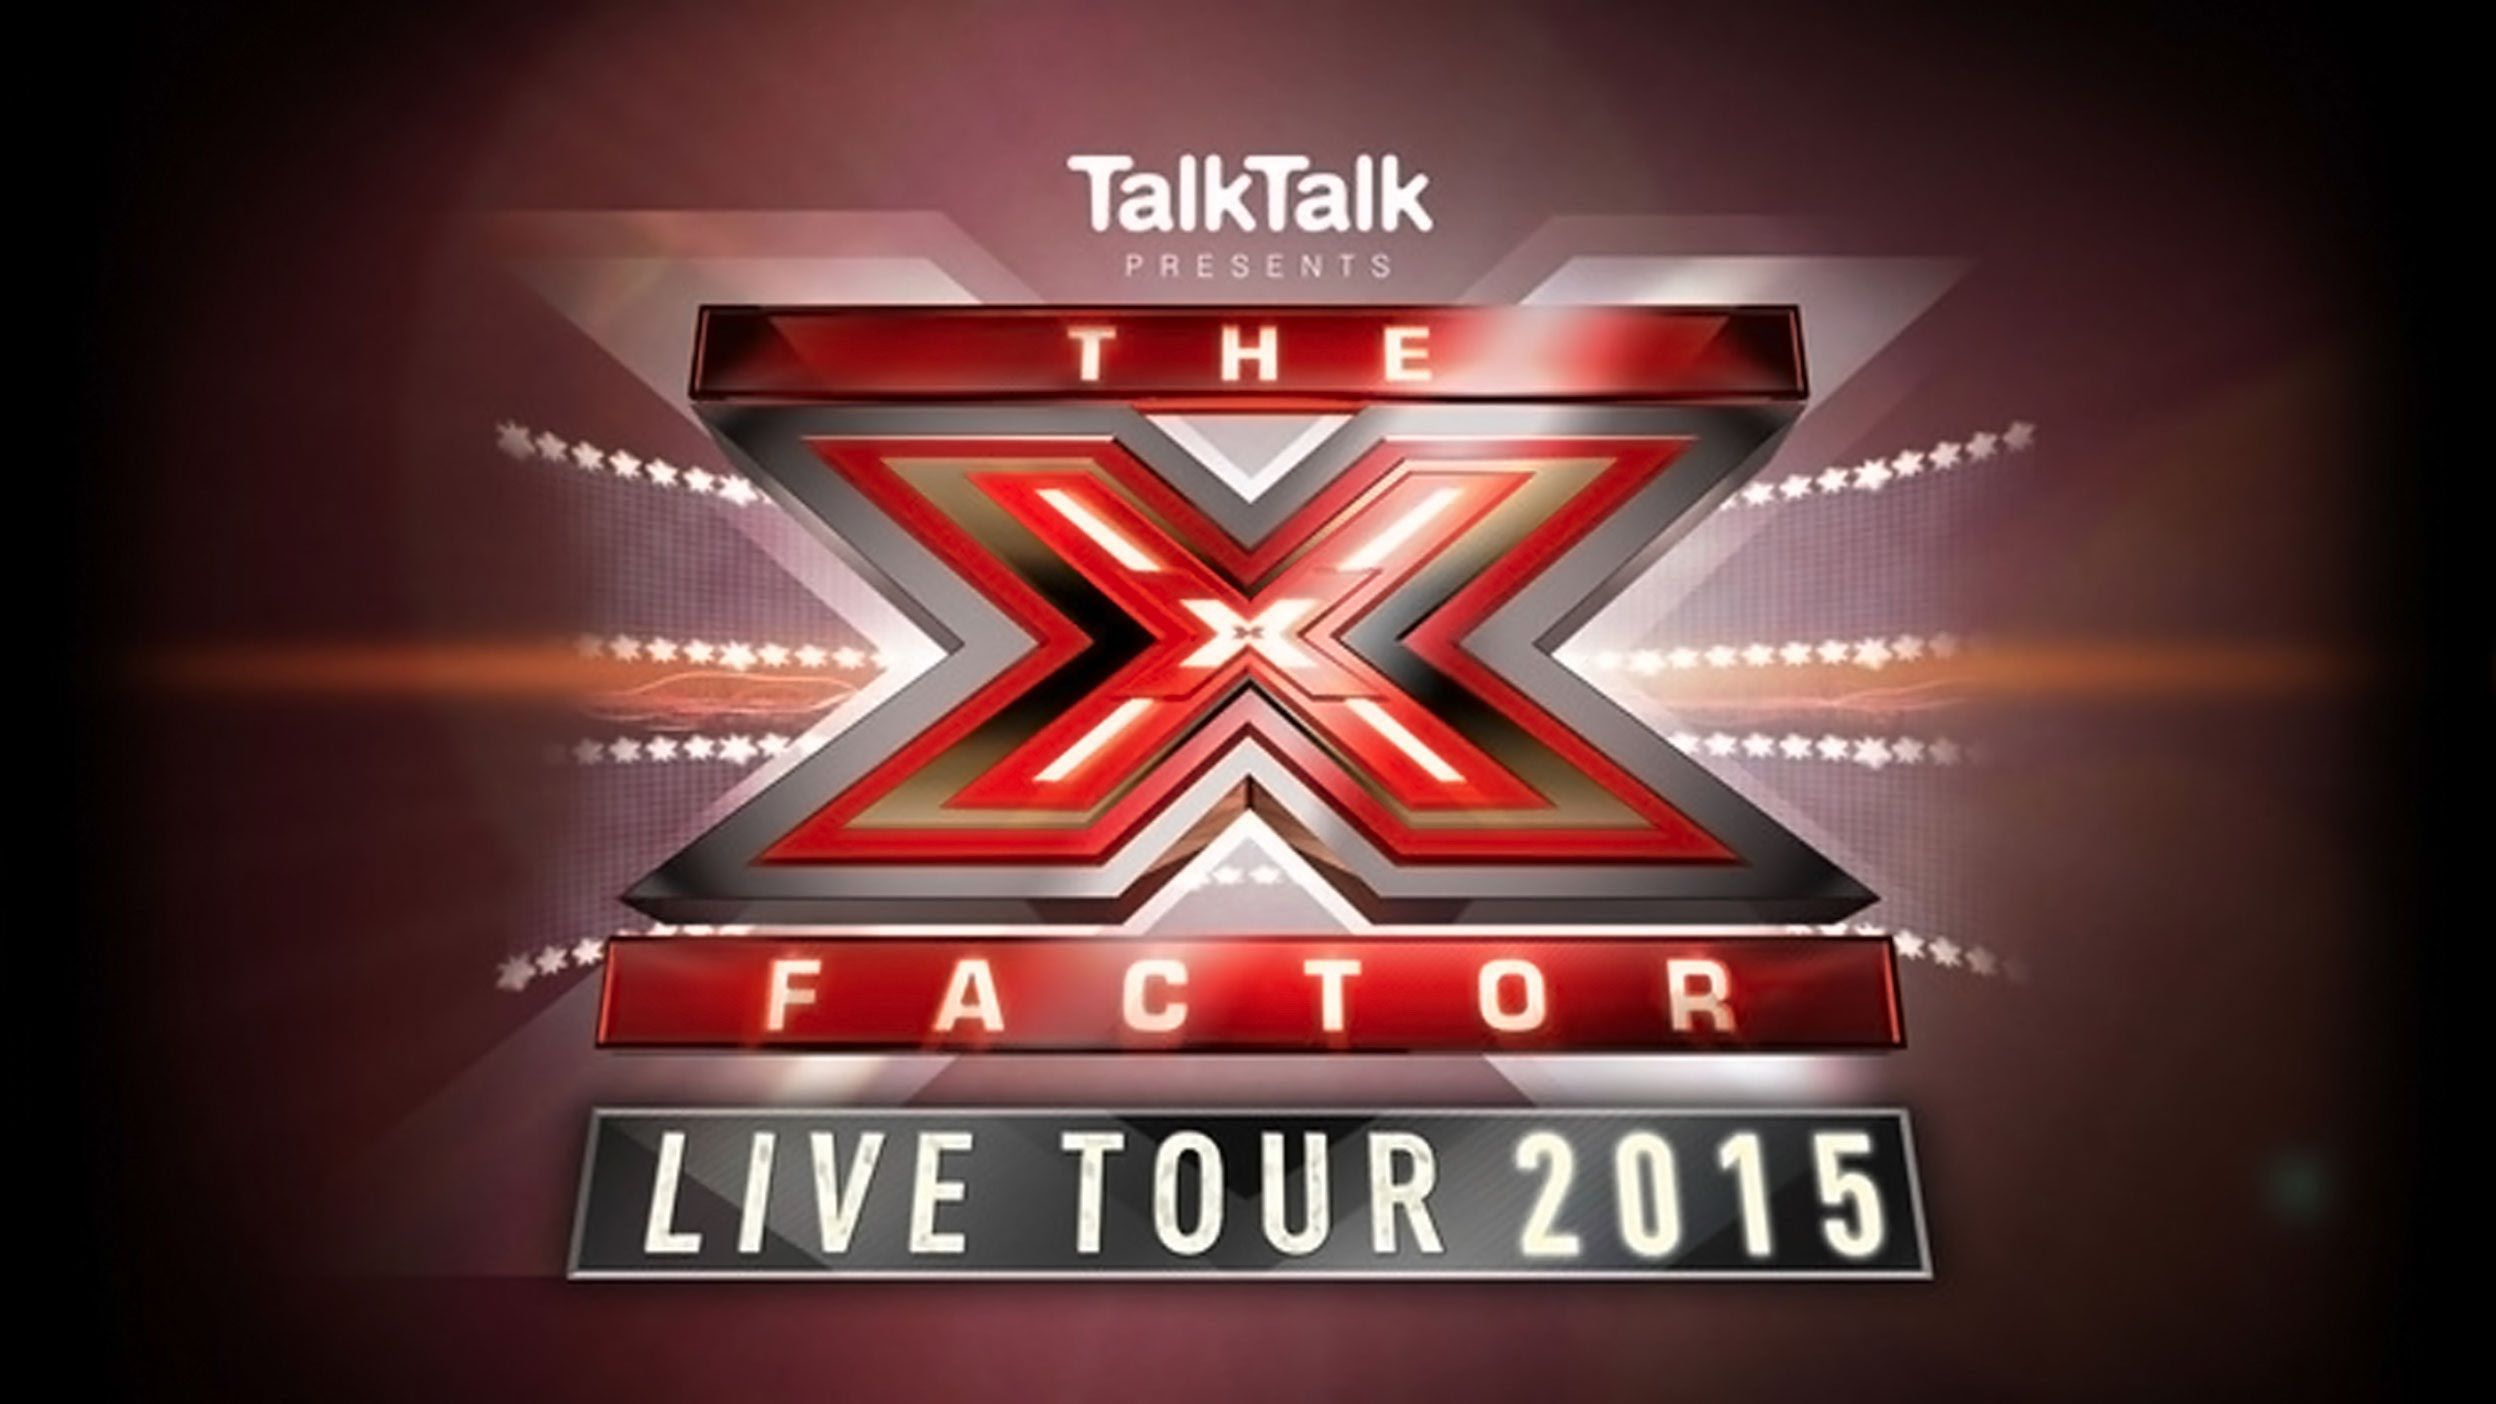 Come to The X Factor Live Tour! The X Factor UK 2014